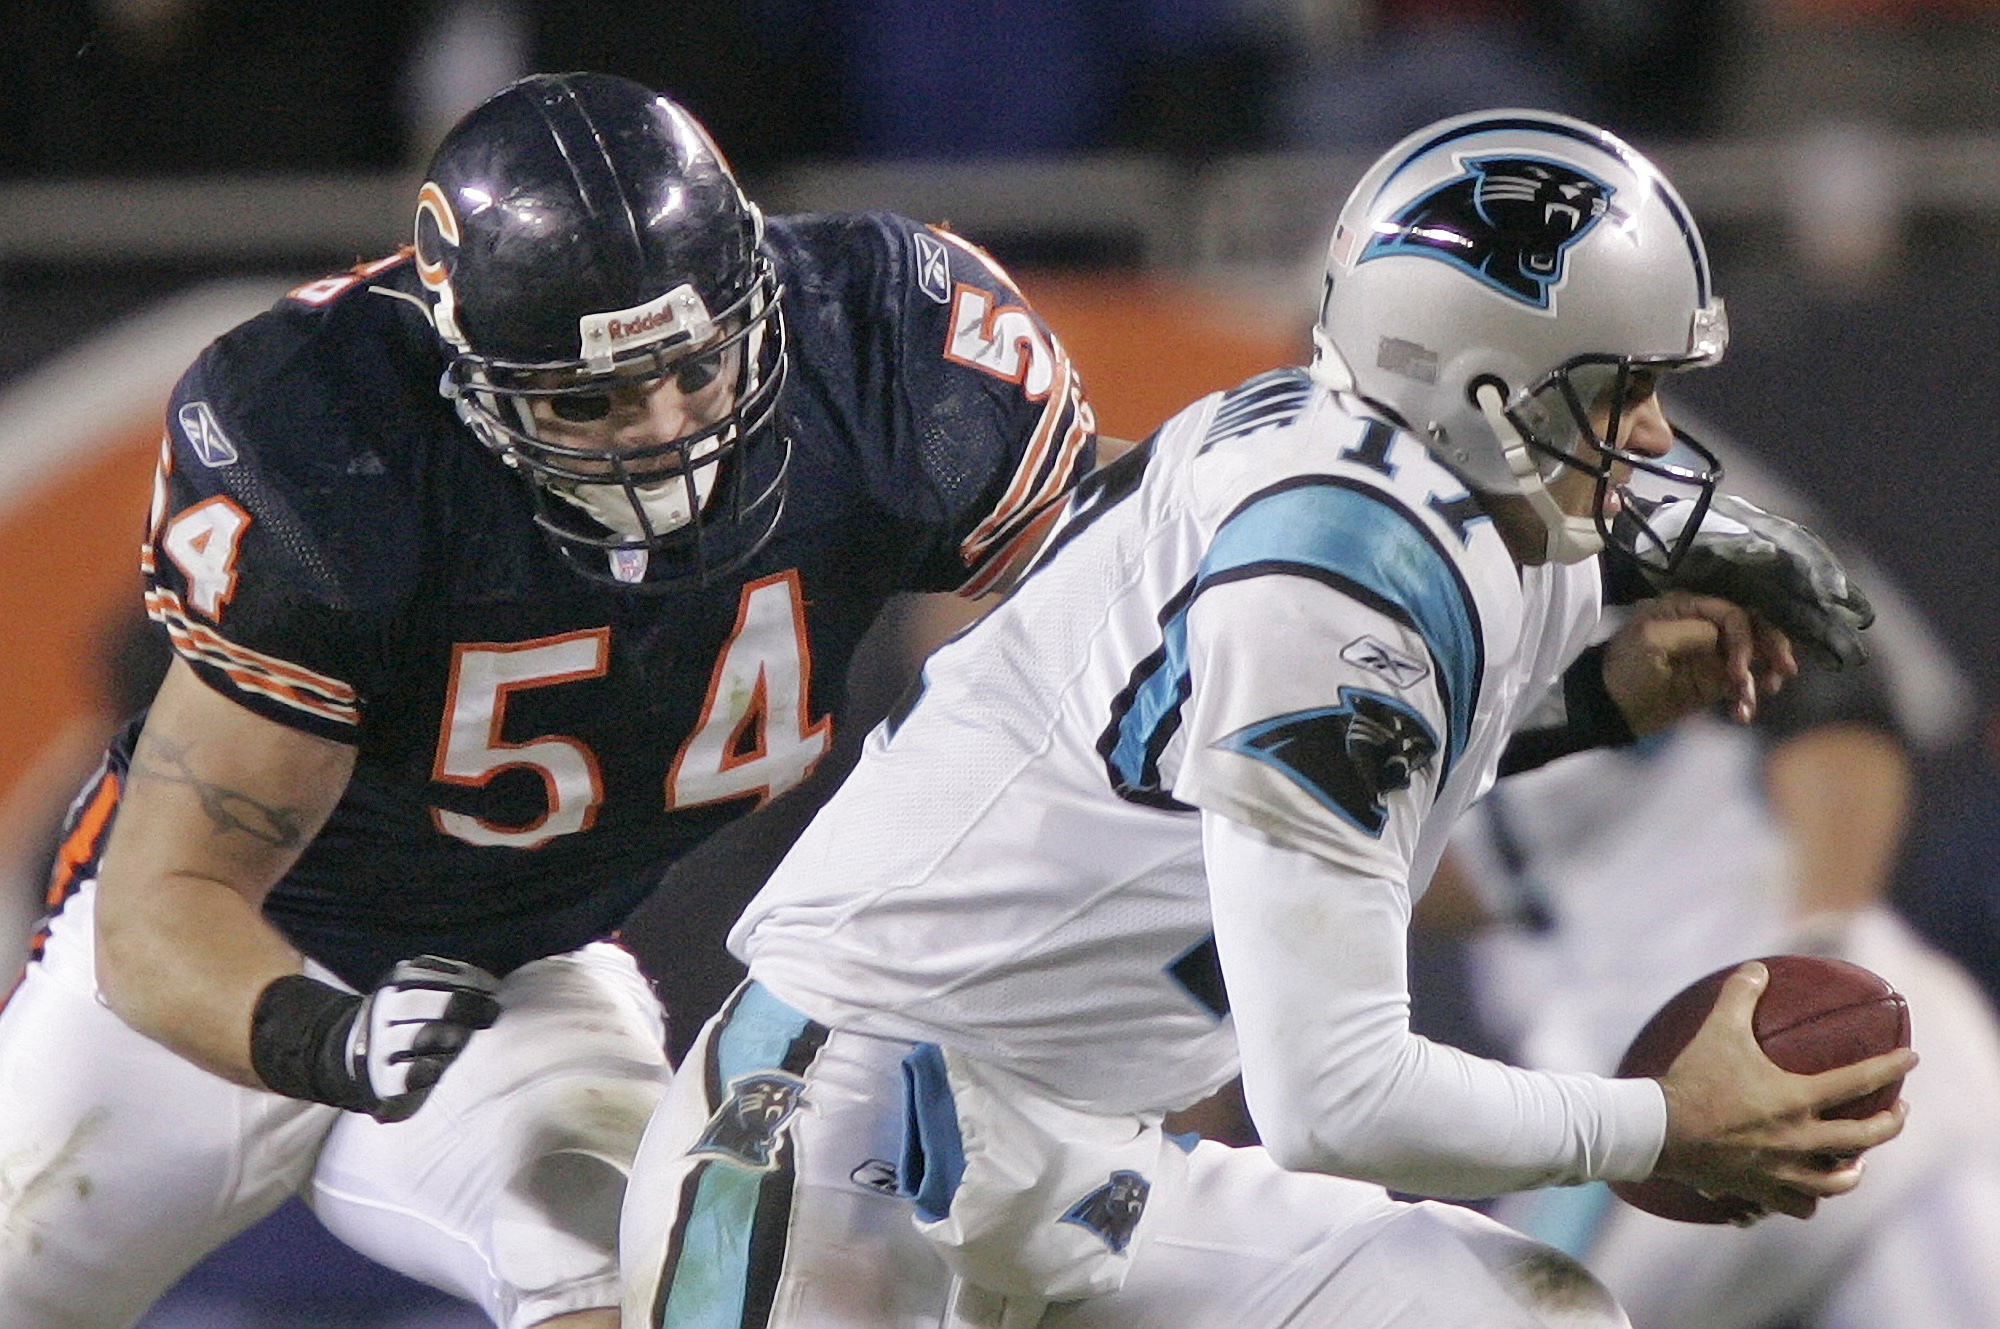 FILE - In this Jan. 15, 2006, file photo, Chicago Bears' linebacker Brian Urlacher (54) attempts to sack Carolina Panthers' quarterback Jake Delhomme (17) in the third quarter of their NFC divisional playoff football game in Chicago. Urlacher was elected to the Pro Football Hall of Fame on Saturday, Feb. 3, 2018. (AP Photo/Morry Gash, File)